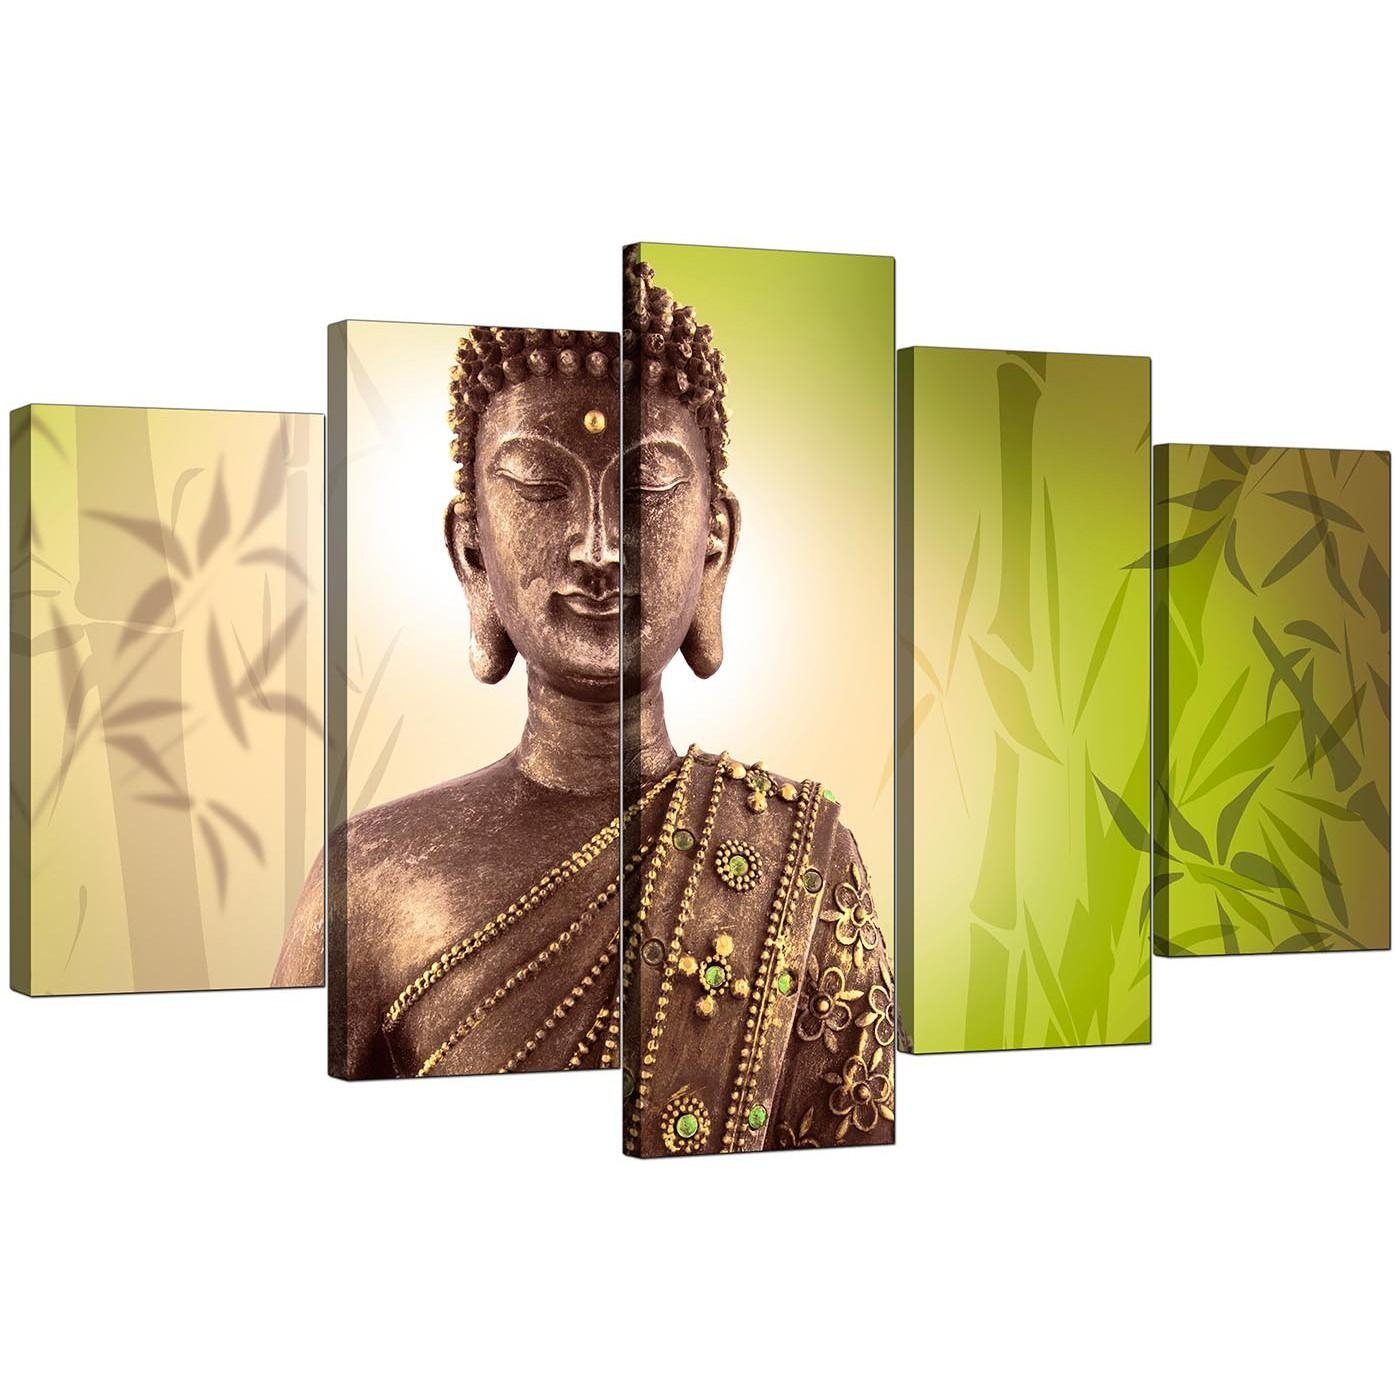 Extra Large Buddha Canvas Wall Art 5 Piece In Green With Large Buddha Wall Art (View 7 of 20)